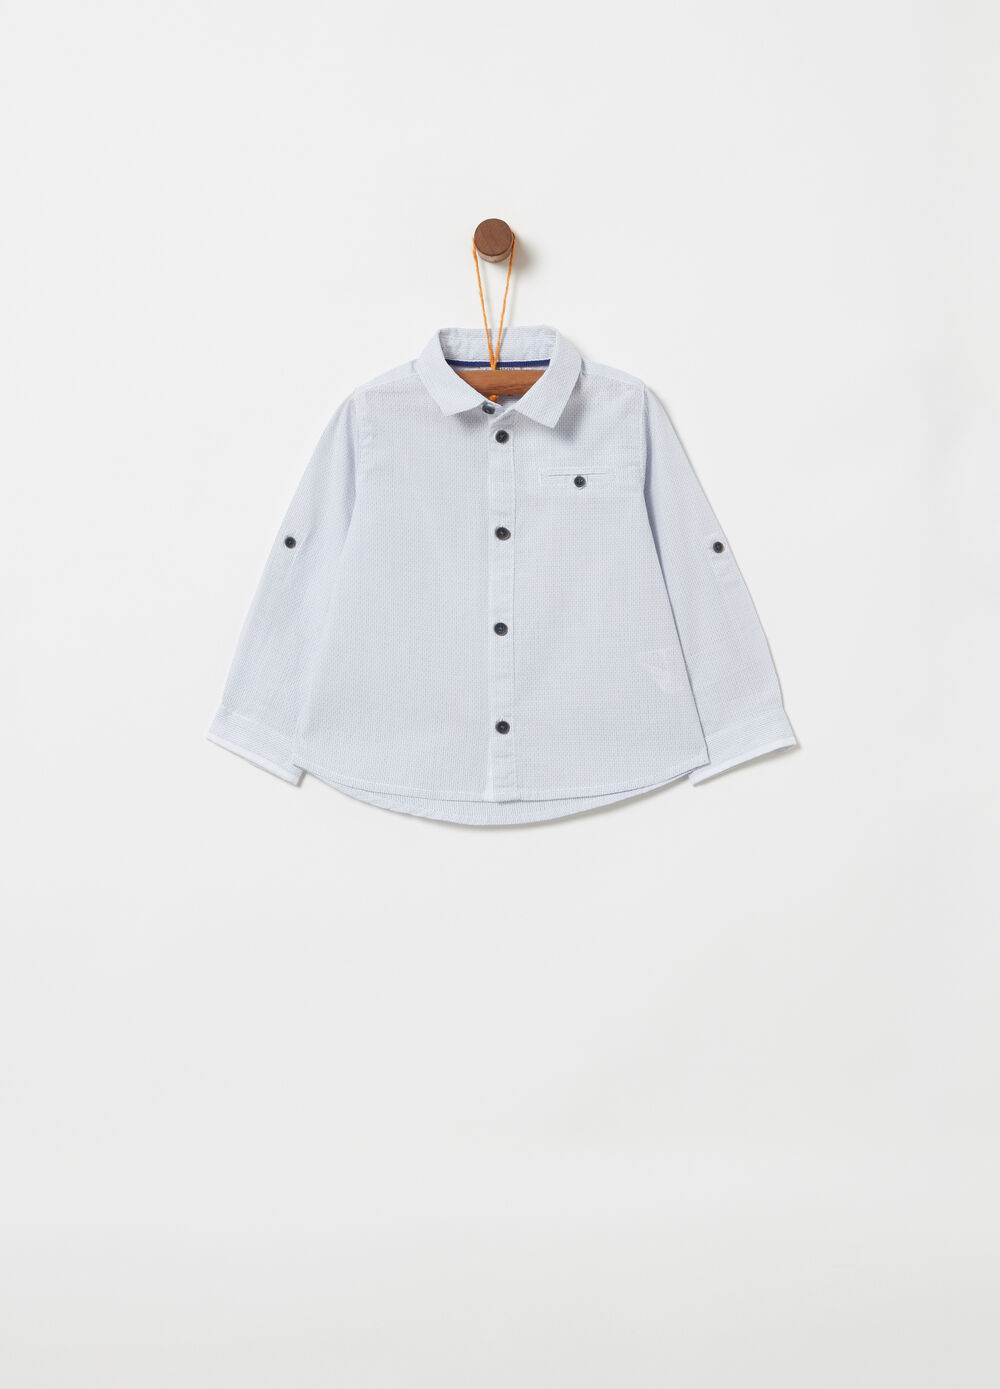 100% cotton shirt with welt pocket